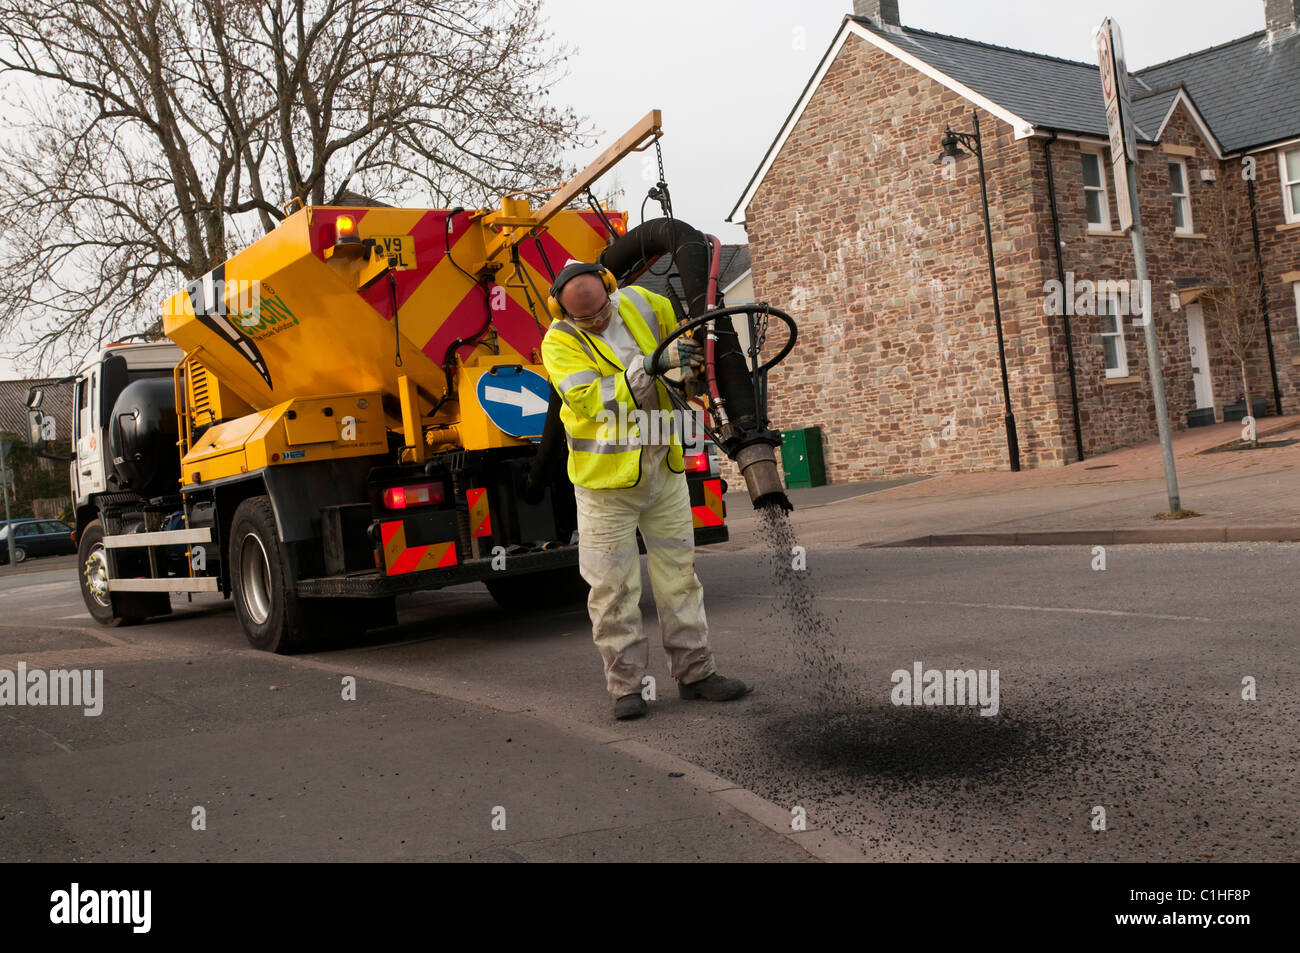 A VELOCITY worker repairing potholes in a road with a high pressure spray blaster system, UK - Stock Image